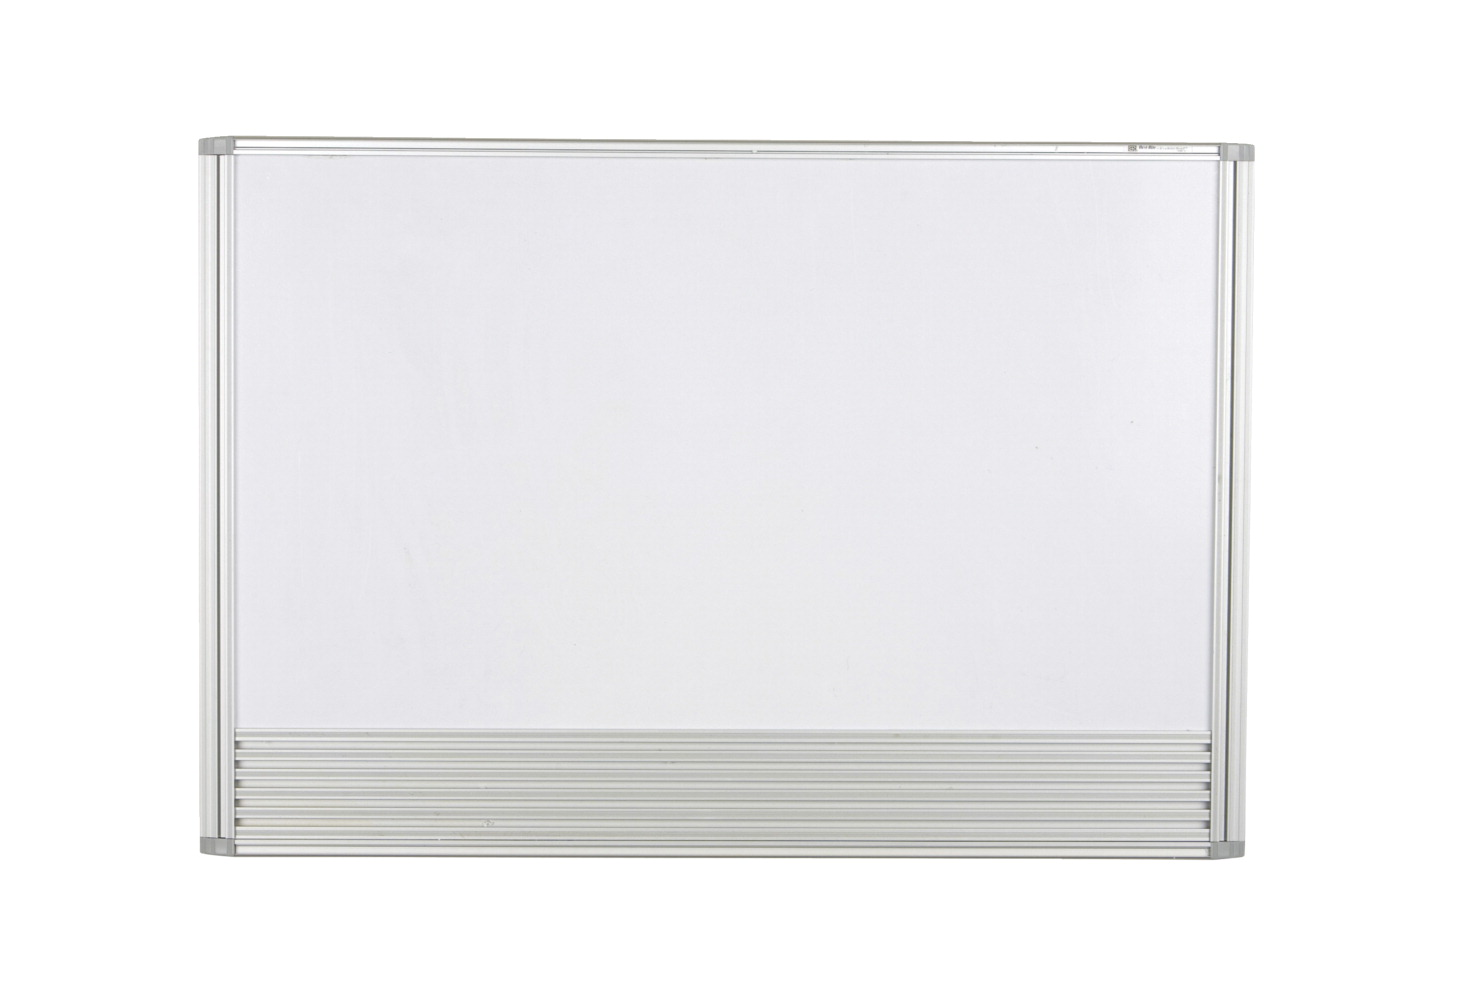 Best-Rite Markerboard, 2 X 3 ft